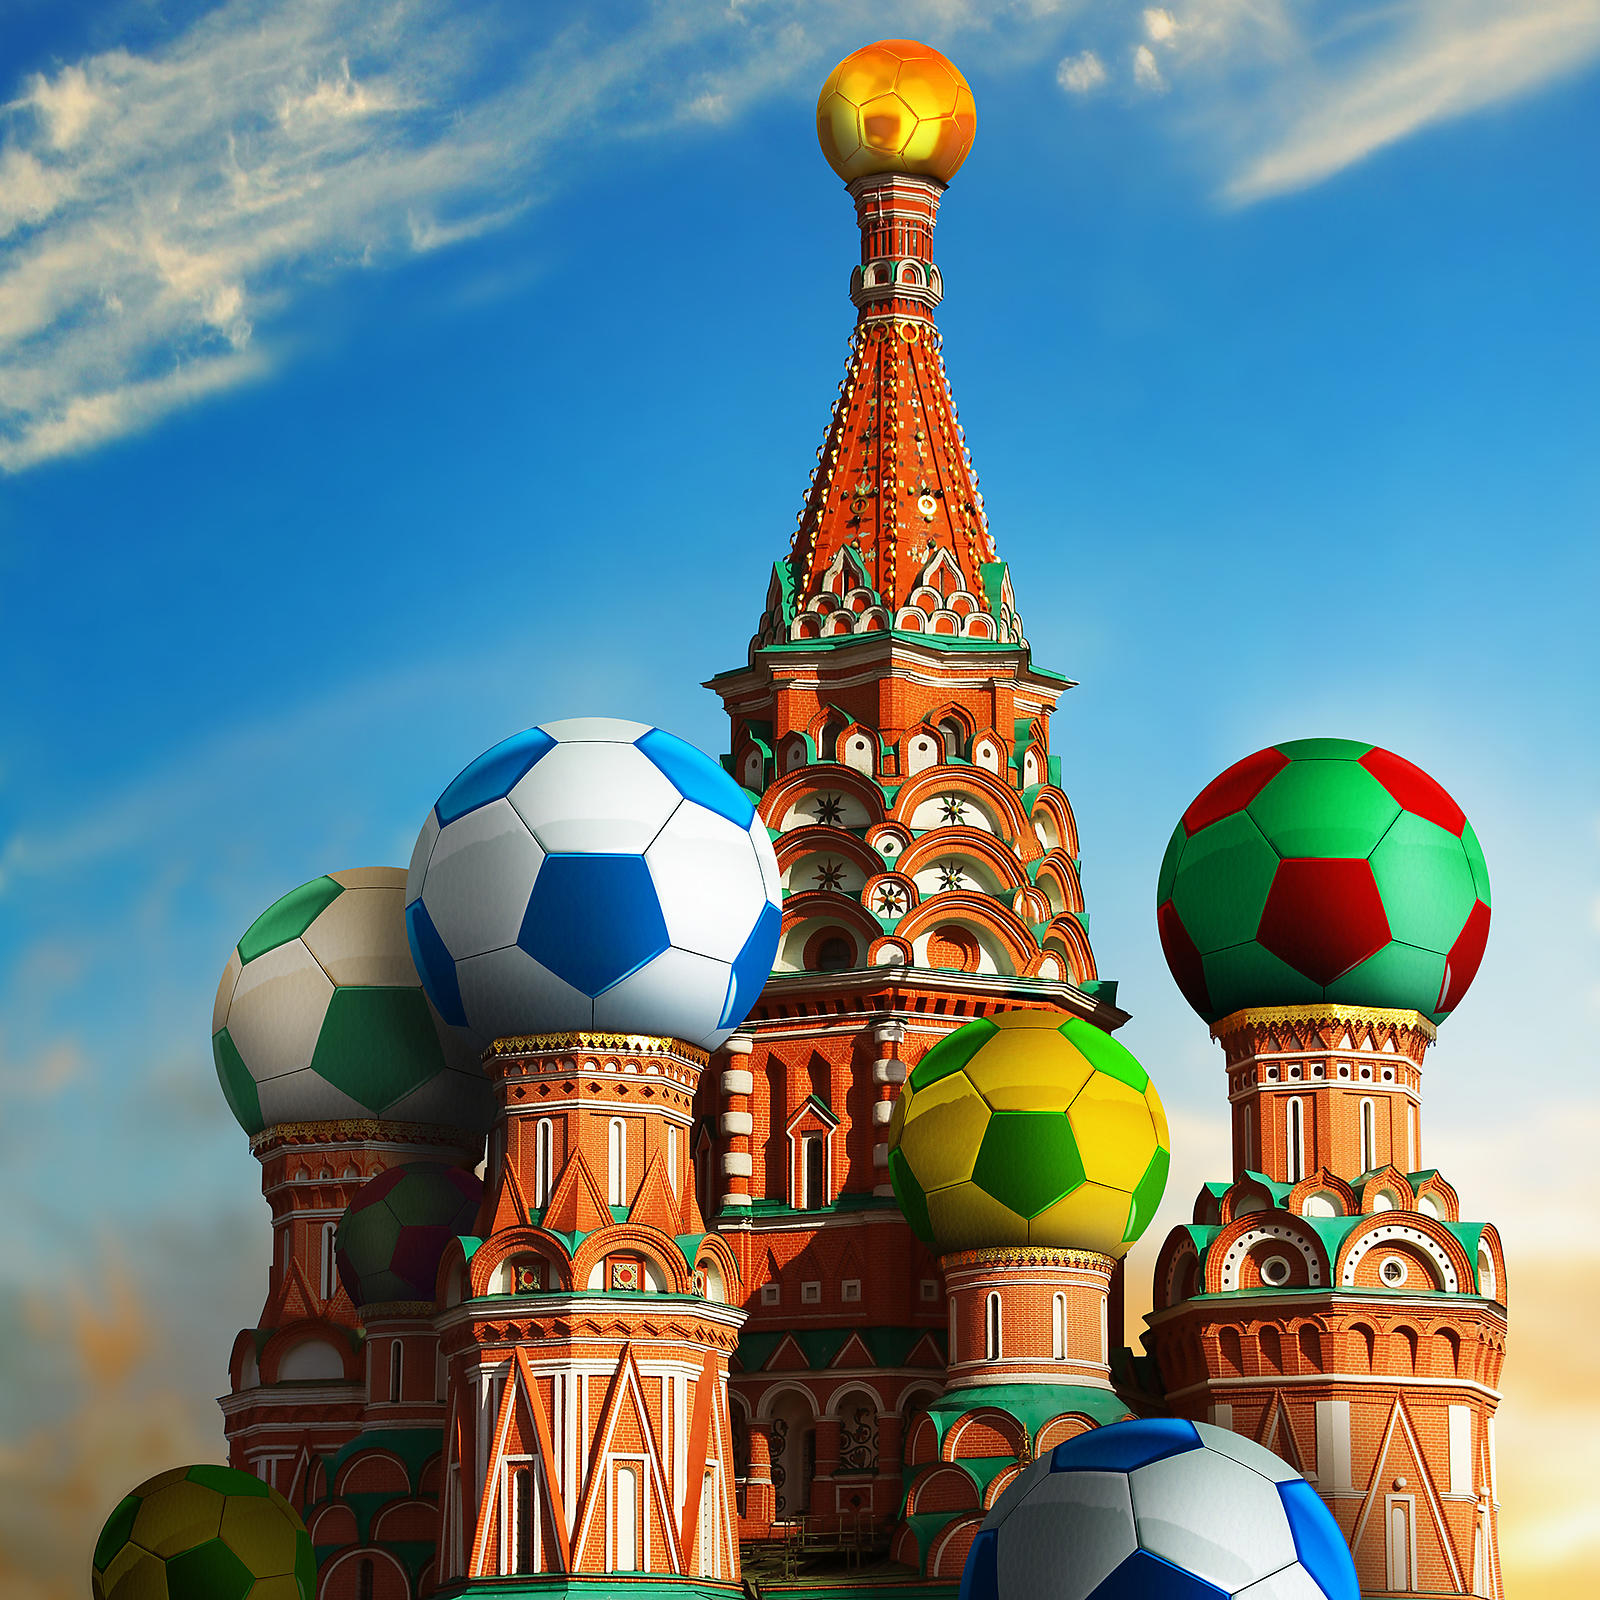 The 2018 FIFA Football World Cup in Russia.